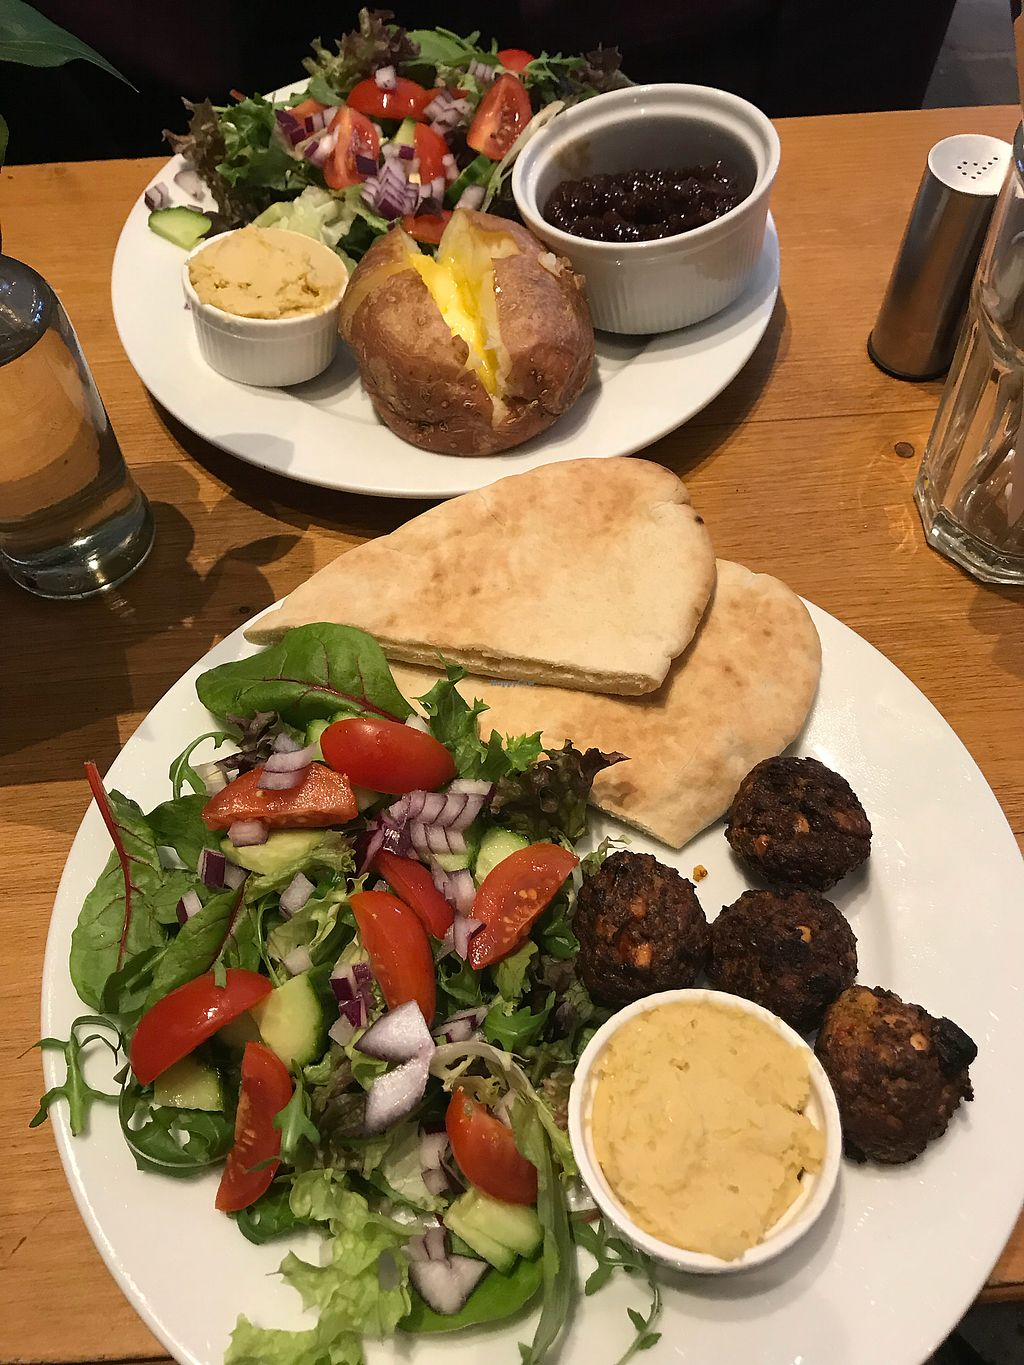 """Photo of World Peace Cafe  by <a href=""""/members/profile/AndyWoolston"""">AndyWoolston</a> <br/>Jacket potato + falafel, hummus and pitta <br/> December 19, 2017  - <a href='/contact/abuse/image/29858/337273'>Report</a>"""